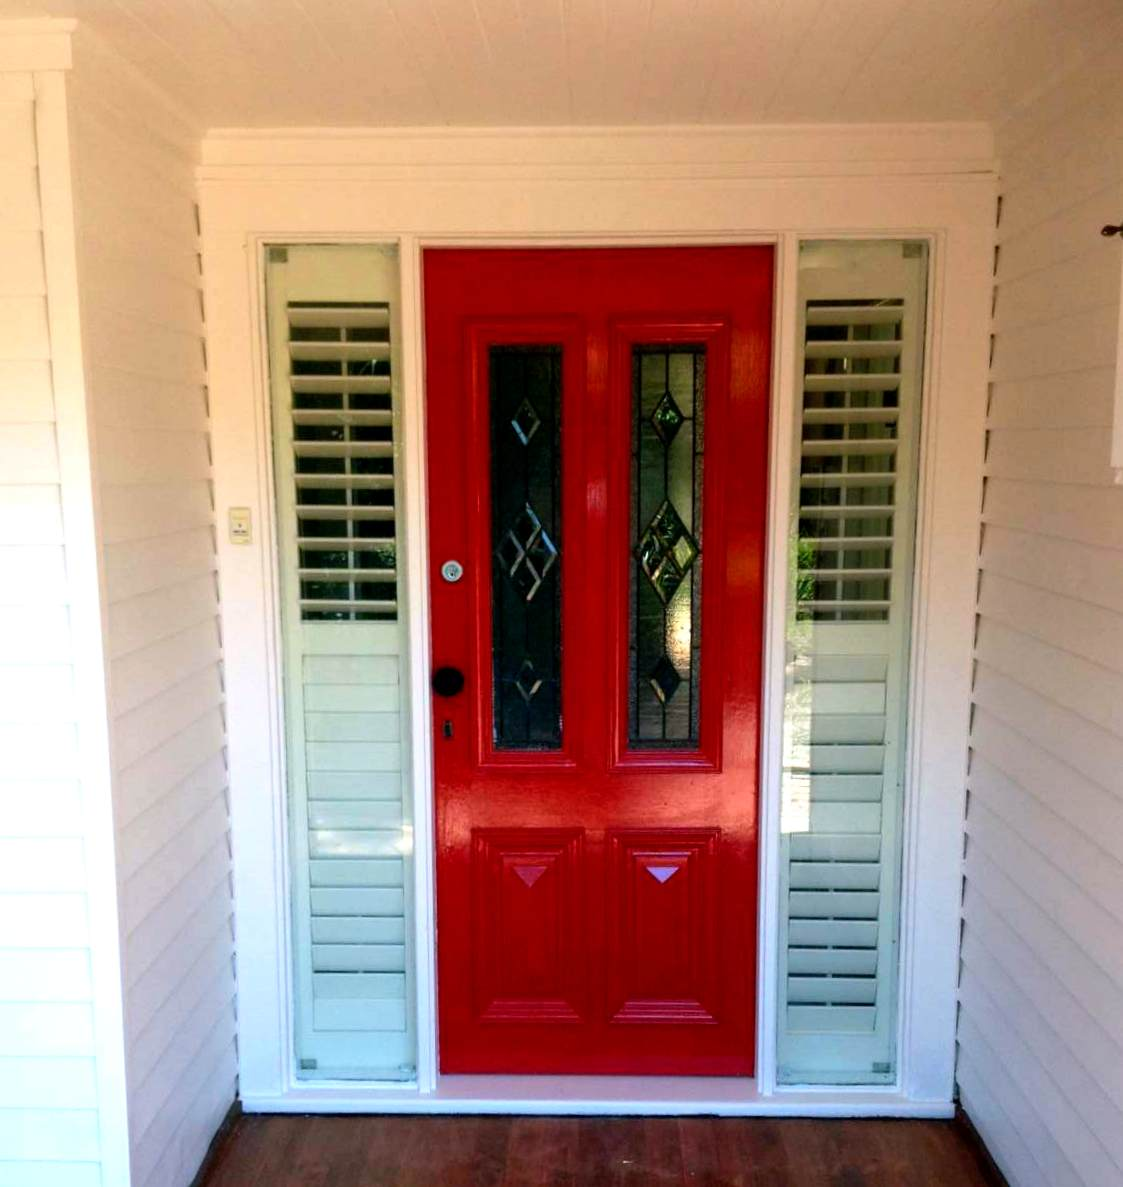 1187 #870808 Residential Painting Melbourne FG Top Quality Painting picture/photo Best Quality Doors 39591123